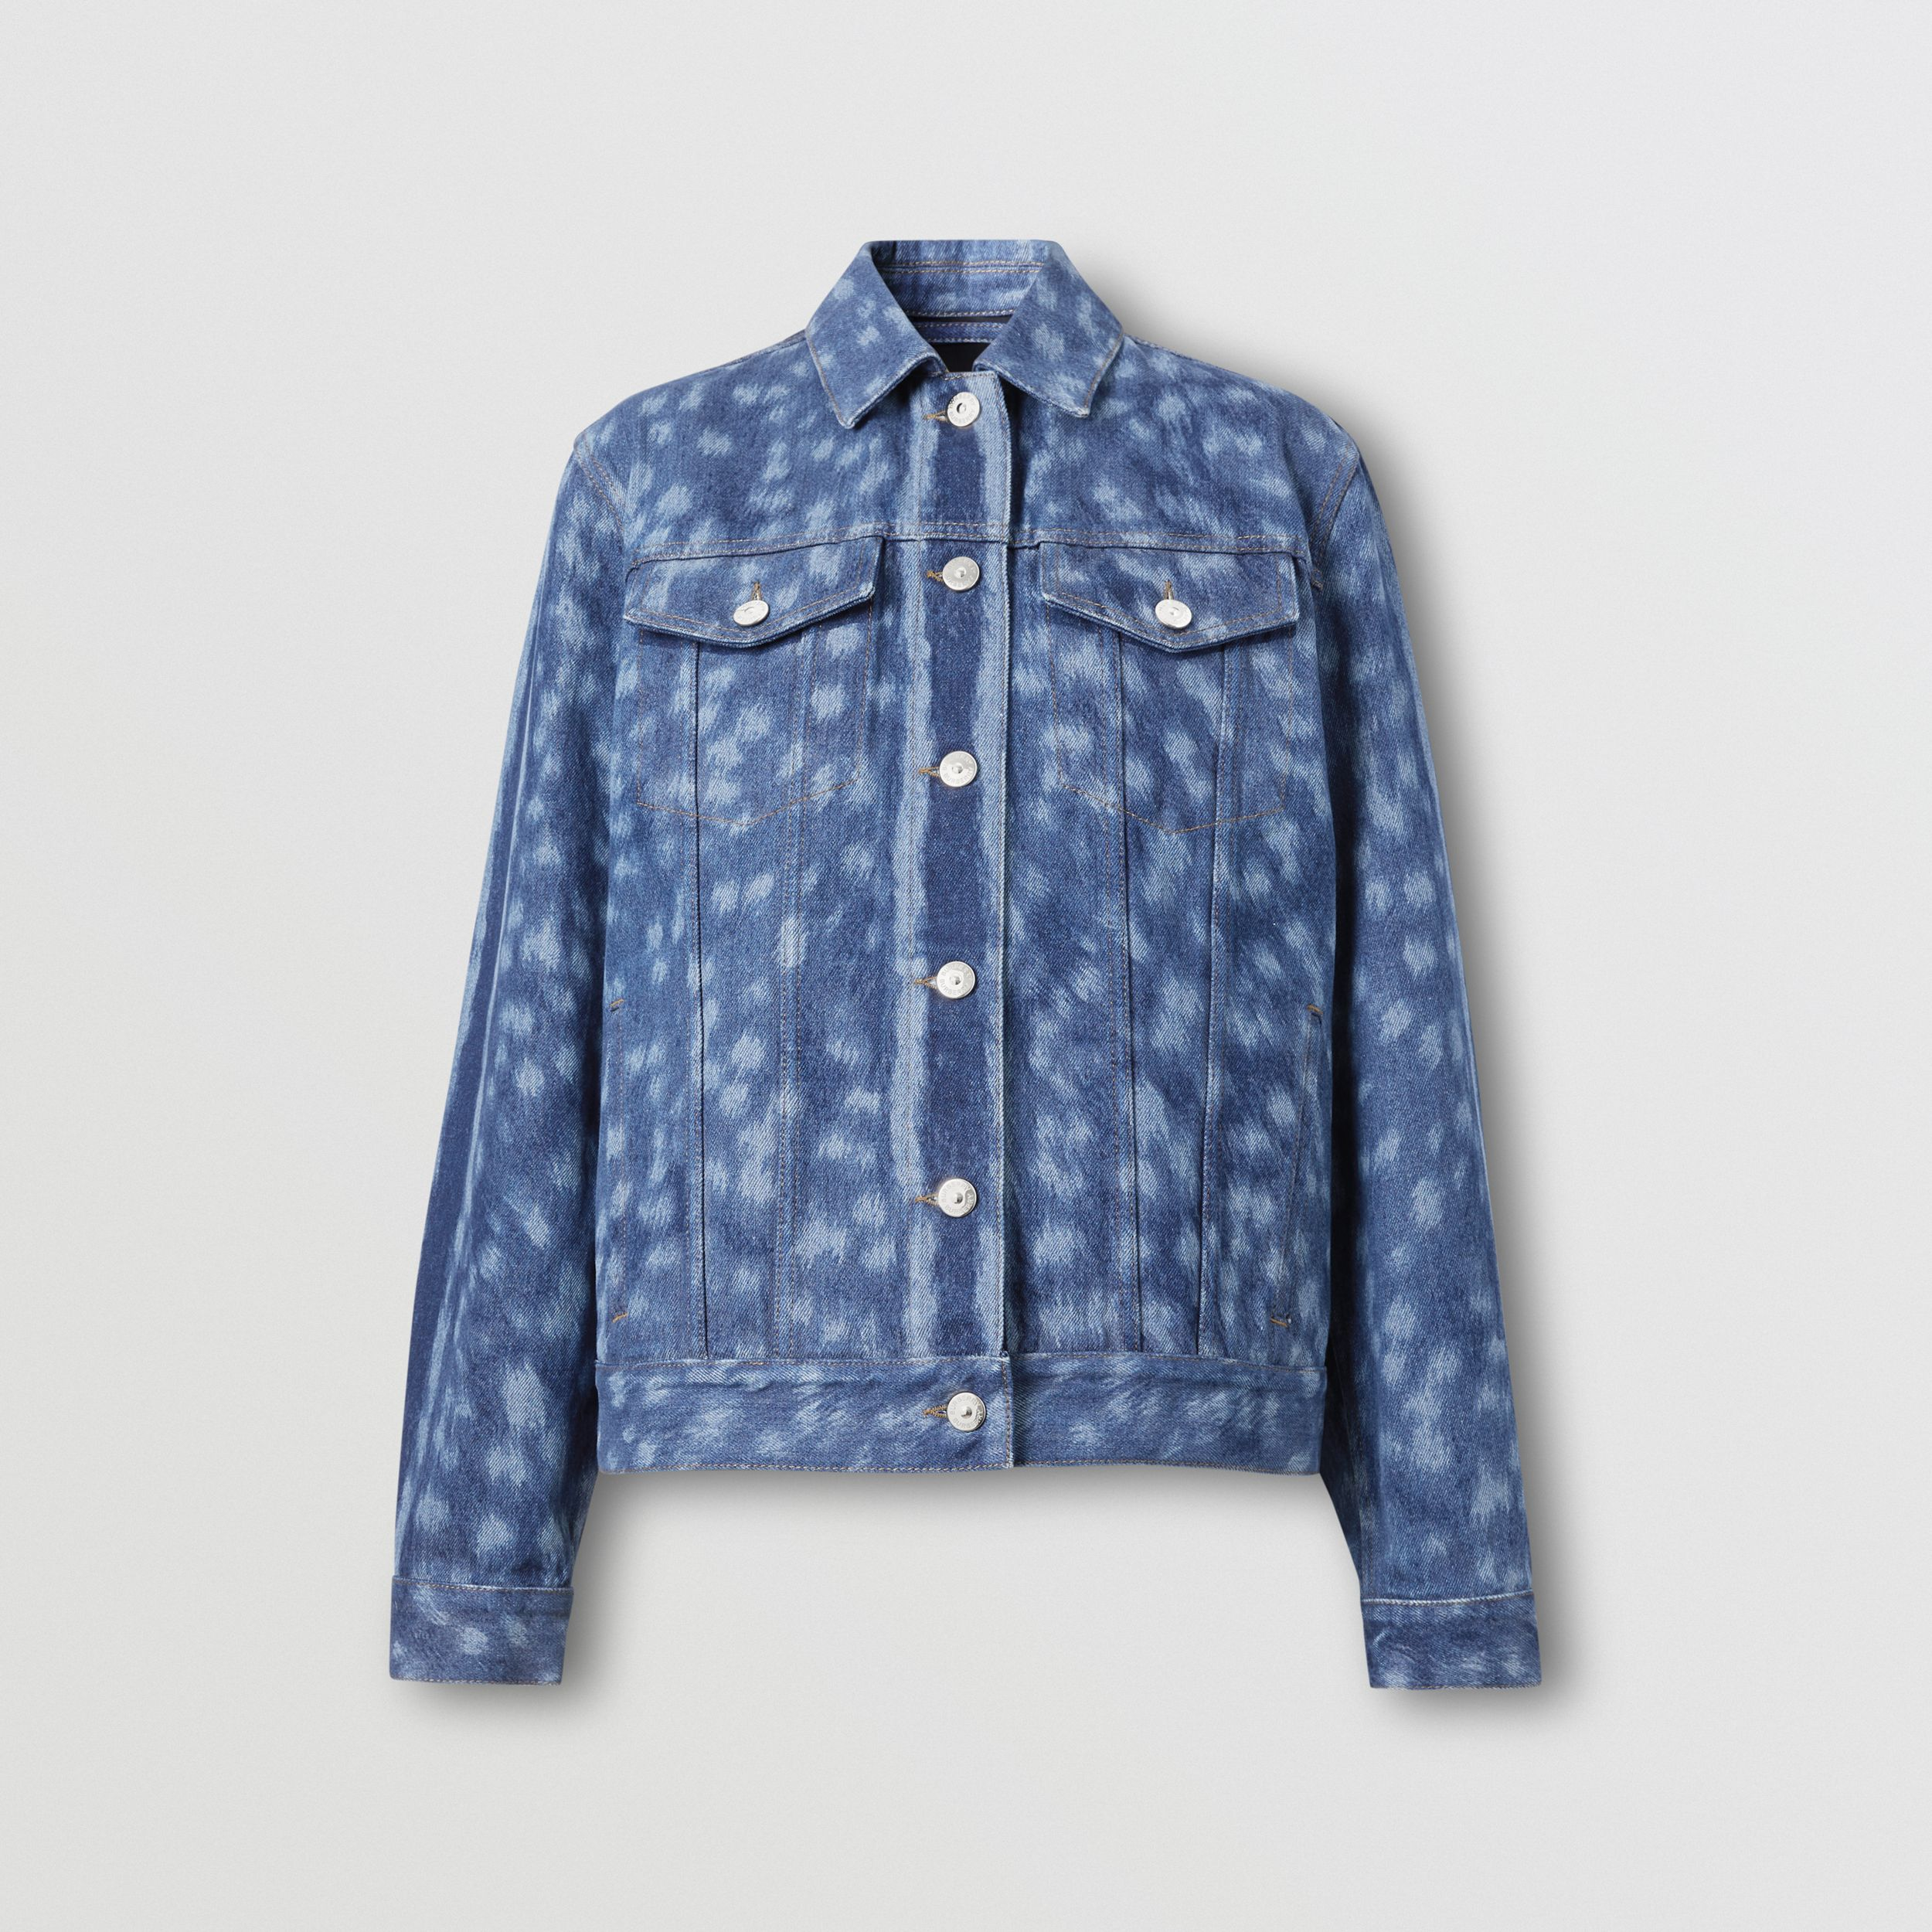 Deer Print Denim Jacket in Mid Indigo - Women | Burberry - 4